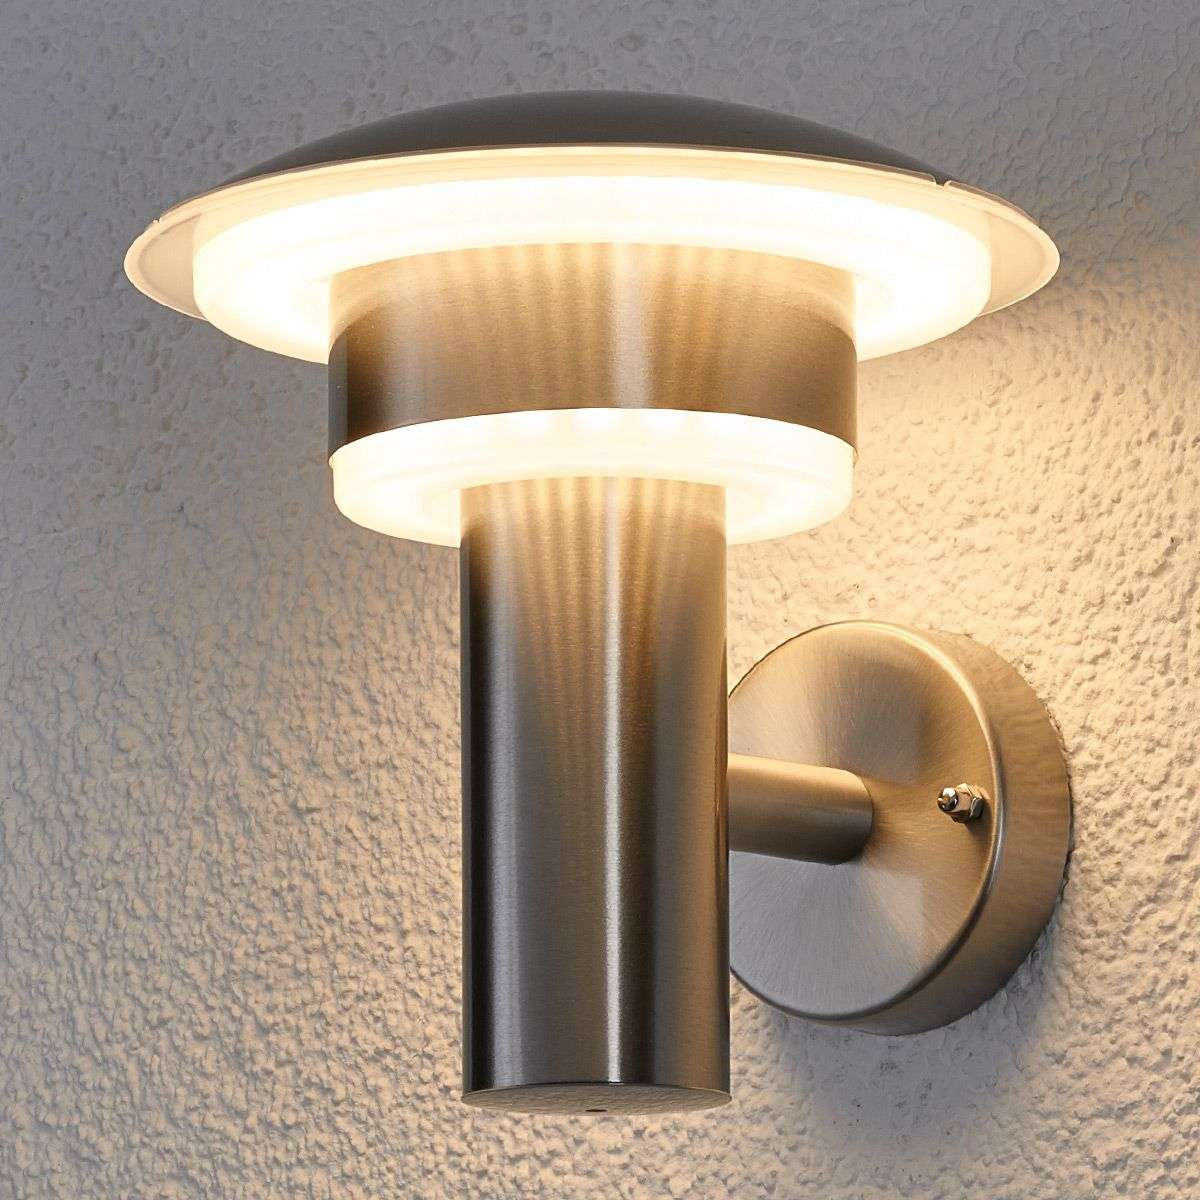 LED stainless steel outdoor wall light Lillie-9988017-31